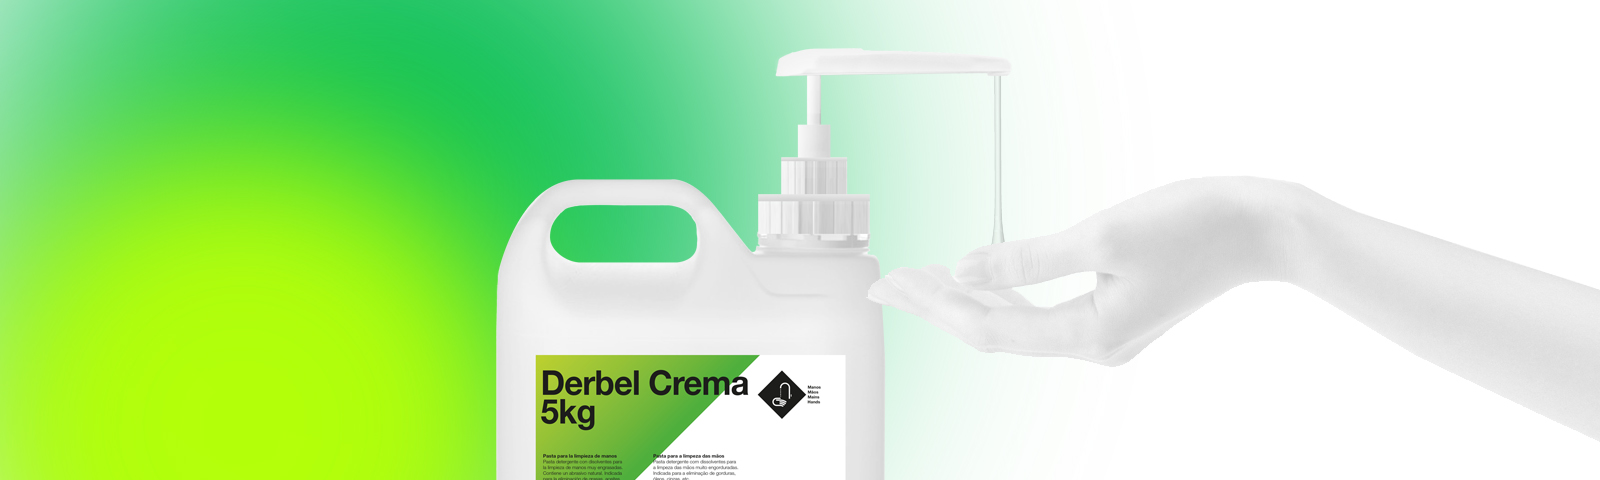 Derbel Crema with natural abrasive